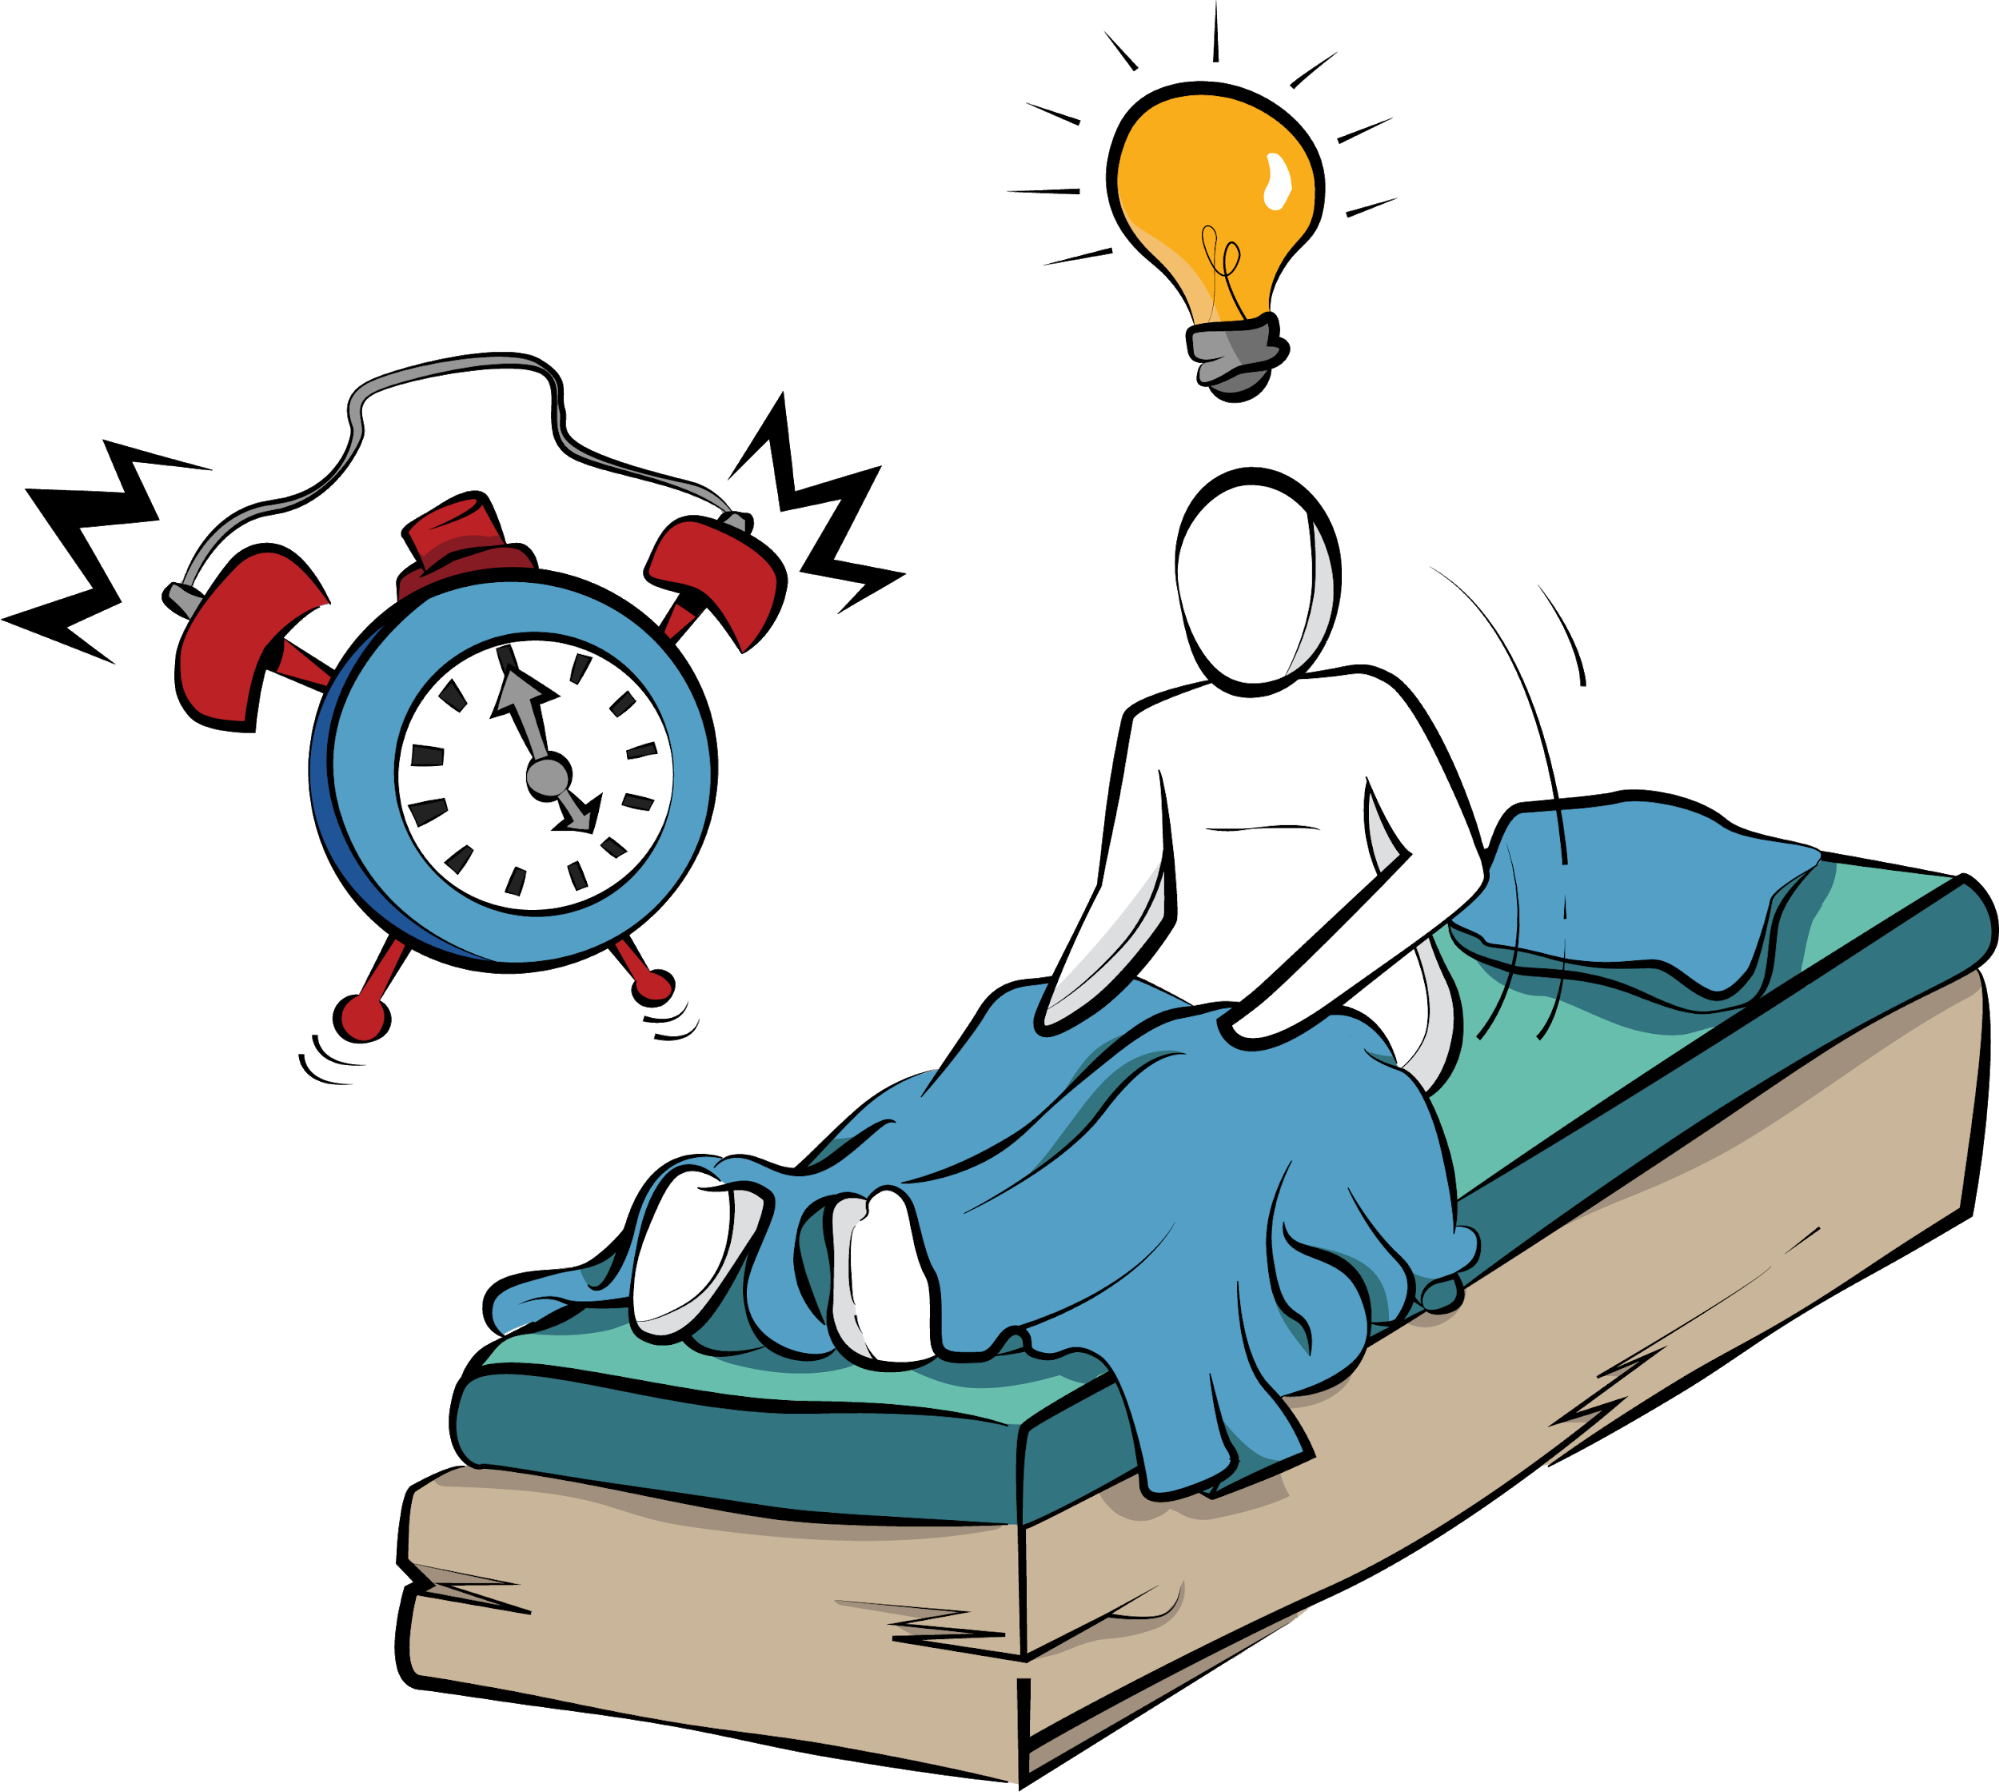 Preparing a creative task the night before helps you leap out of bed and start working.